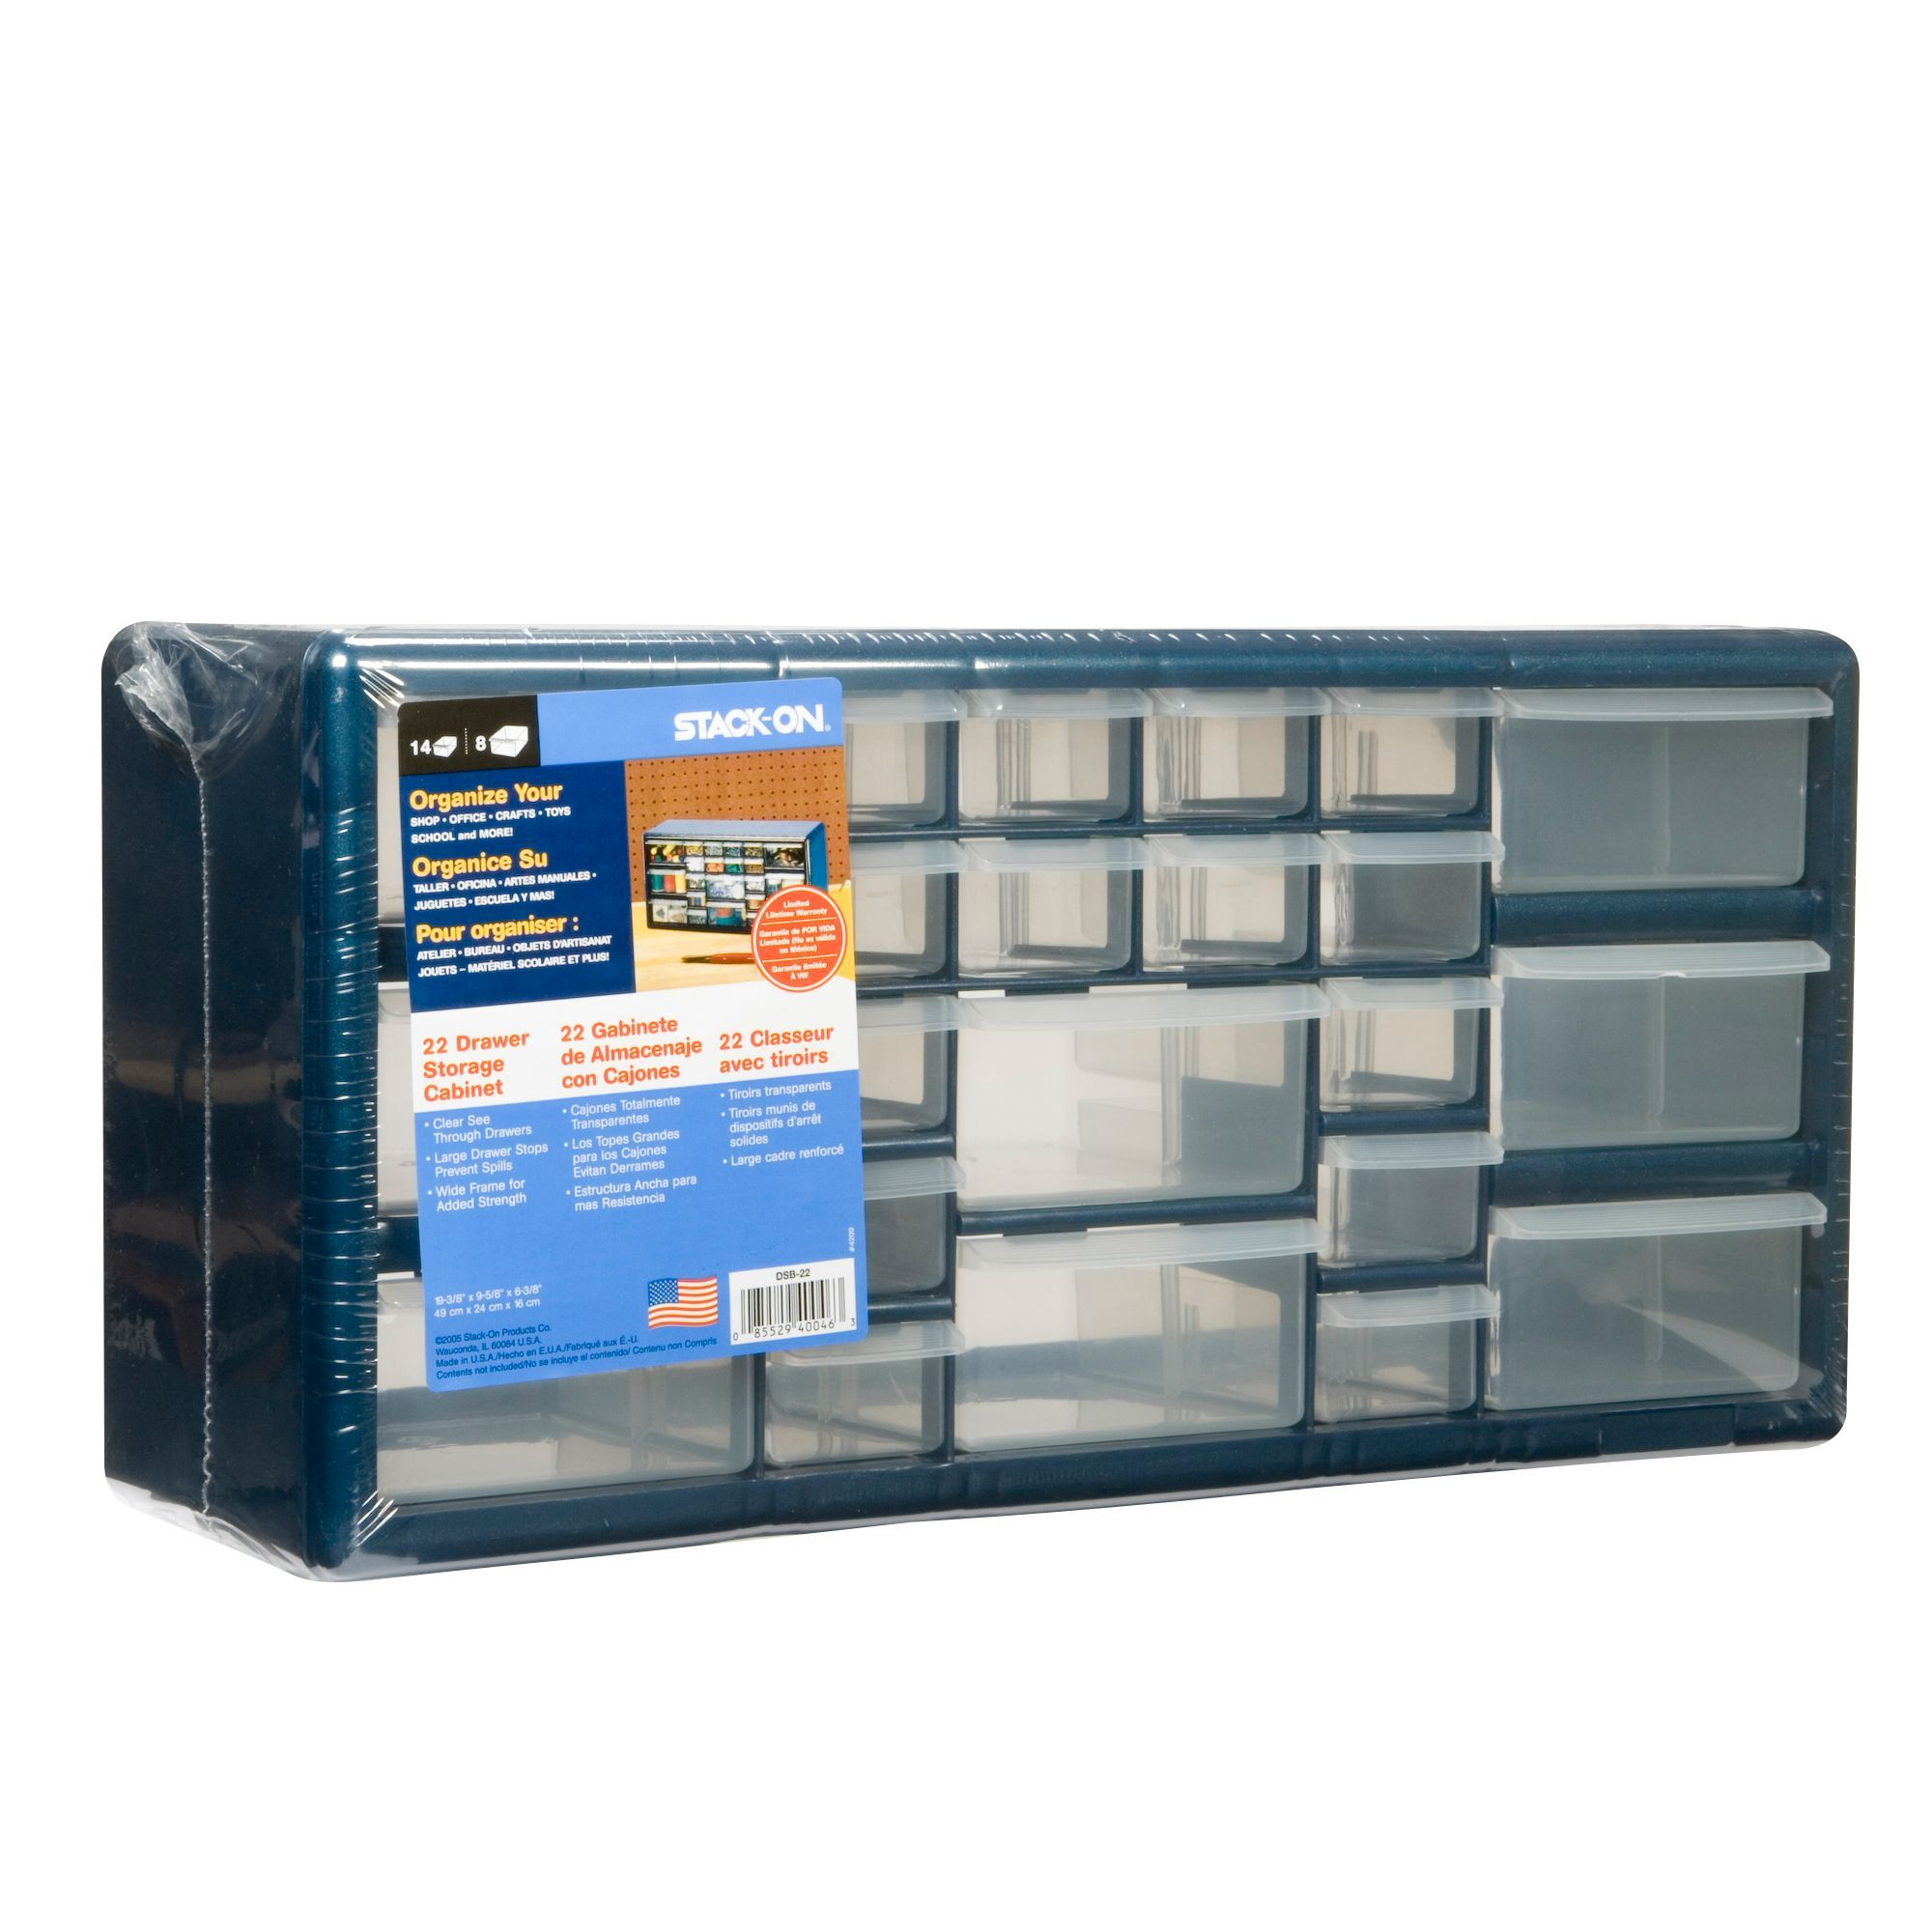 Sears for 13 dollars. office supply closet organizer - Google ...